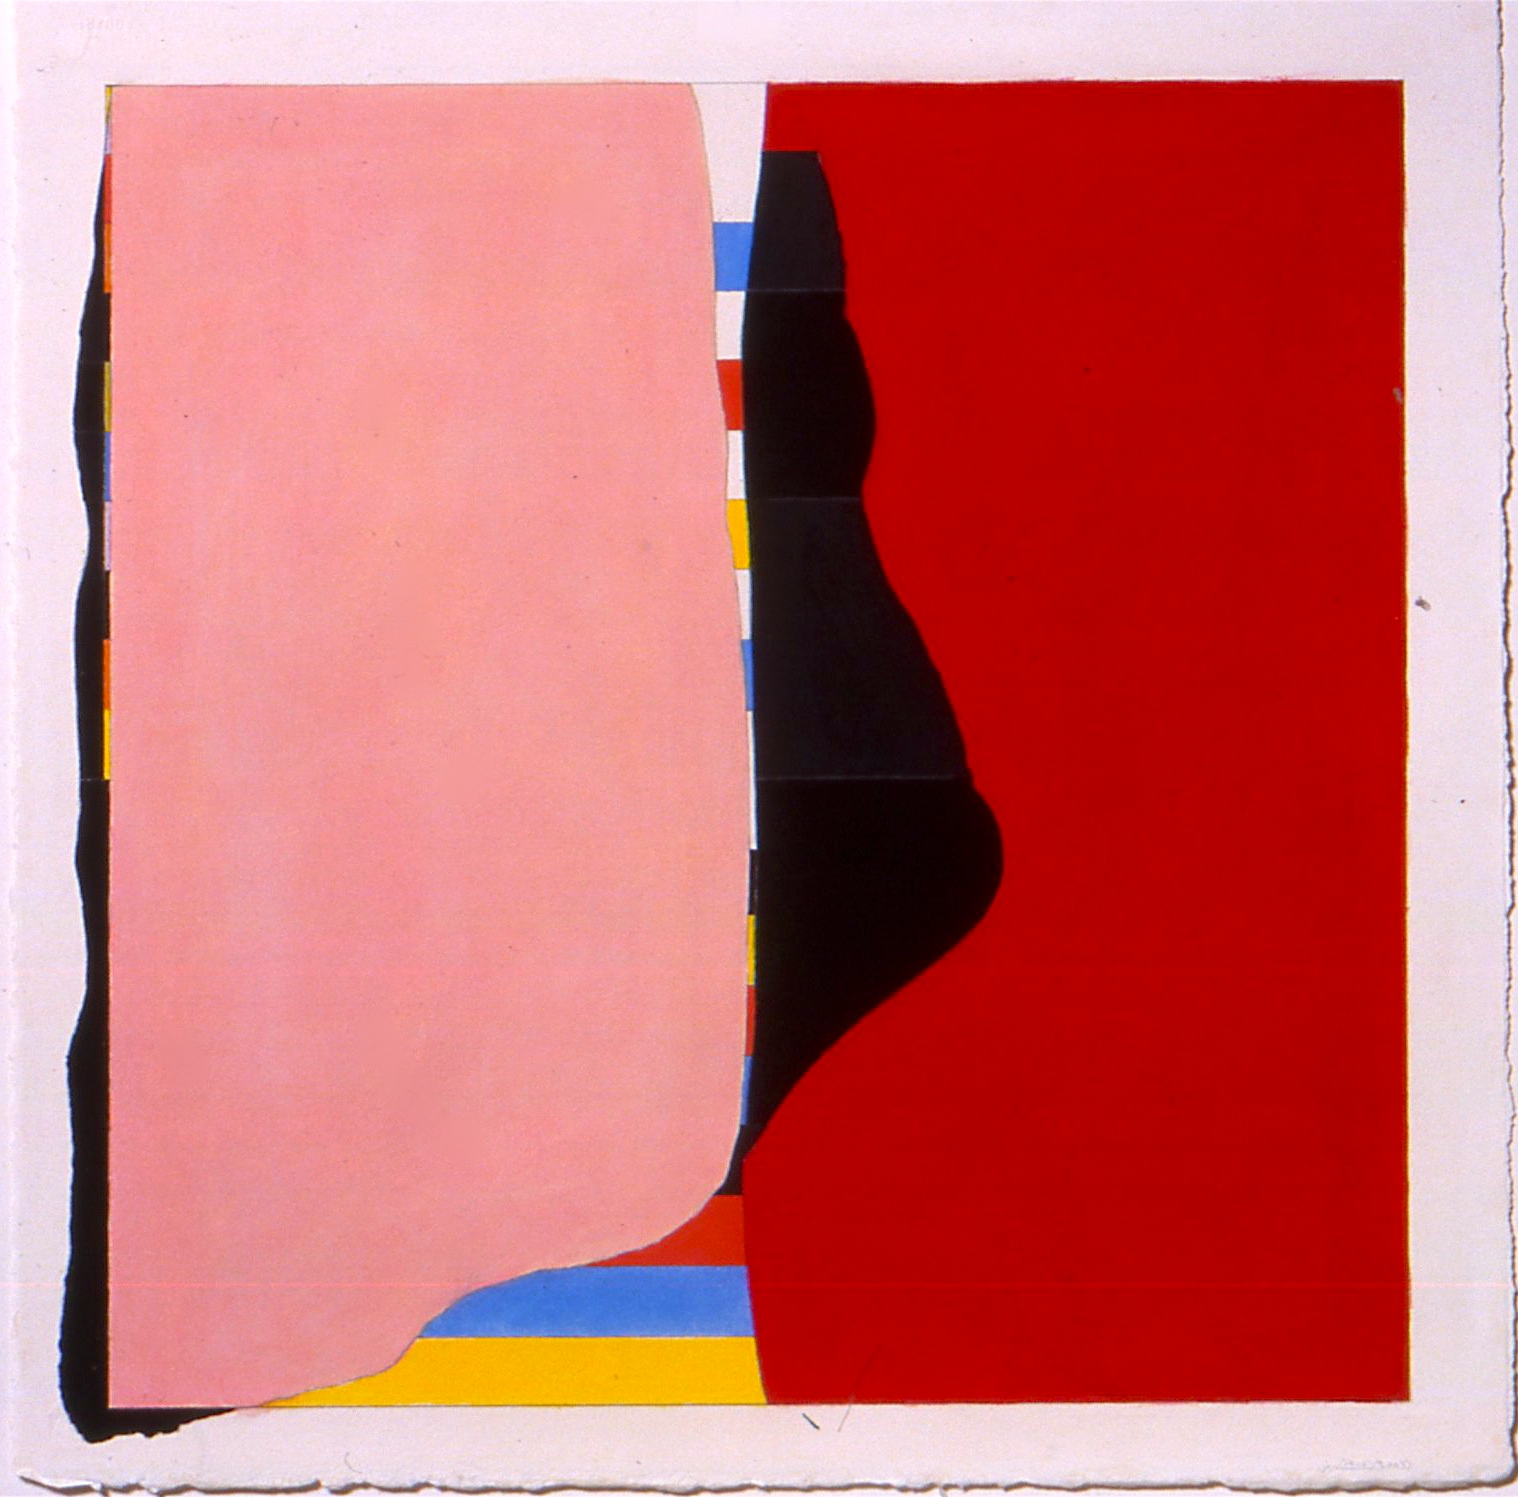 """Untitled (PG 28), 2003, gouache on paper, 28 5/8""""x21"""" (image), 23 1/8""""x23 1/8"""" (paper)"""